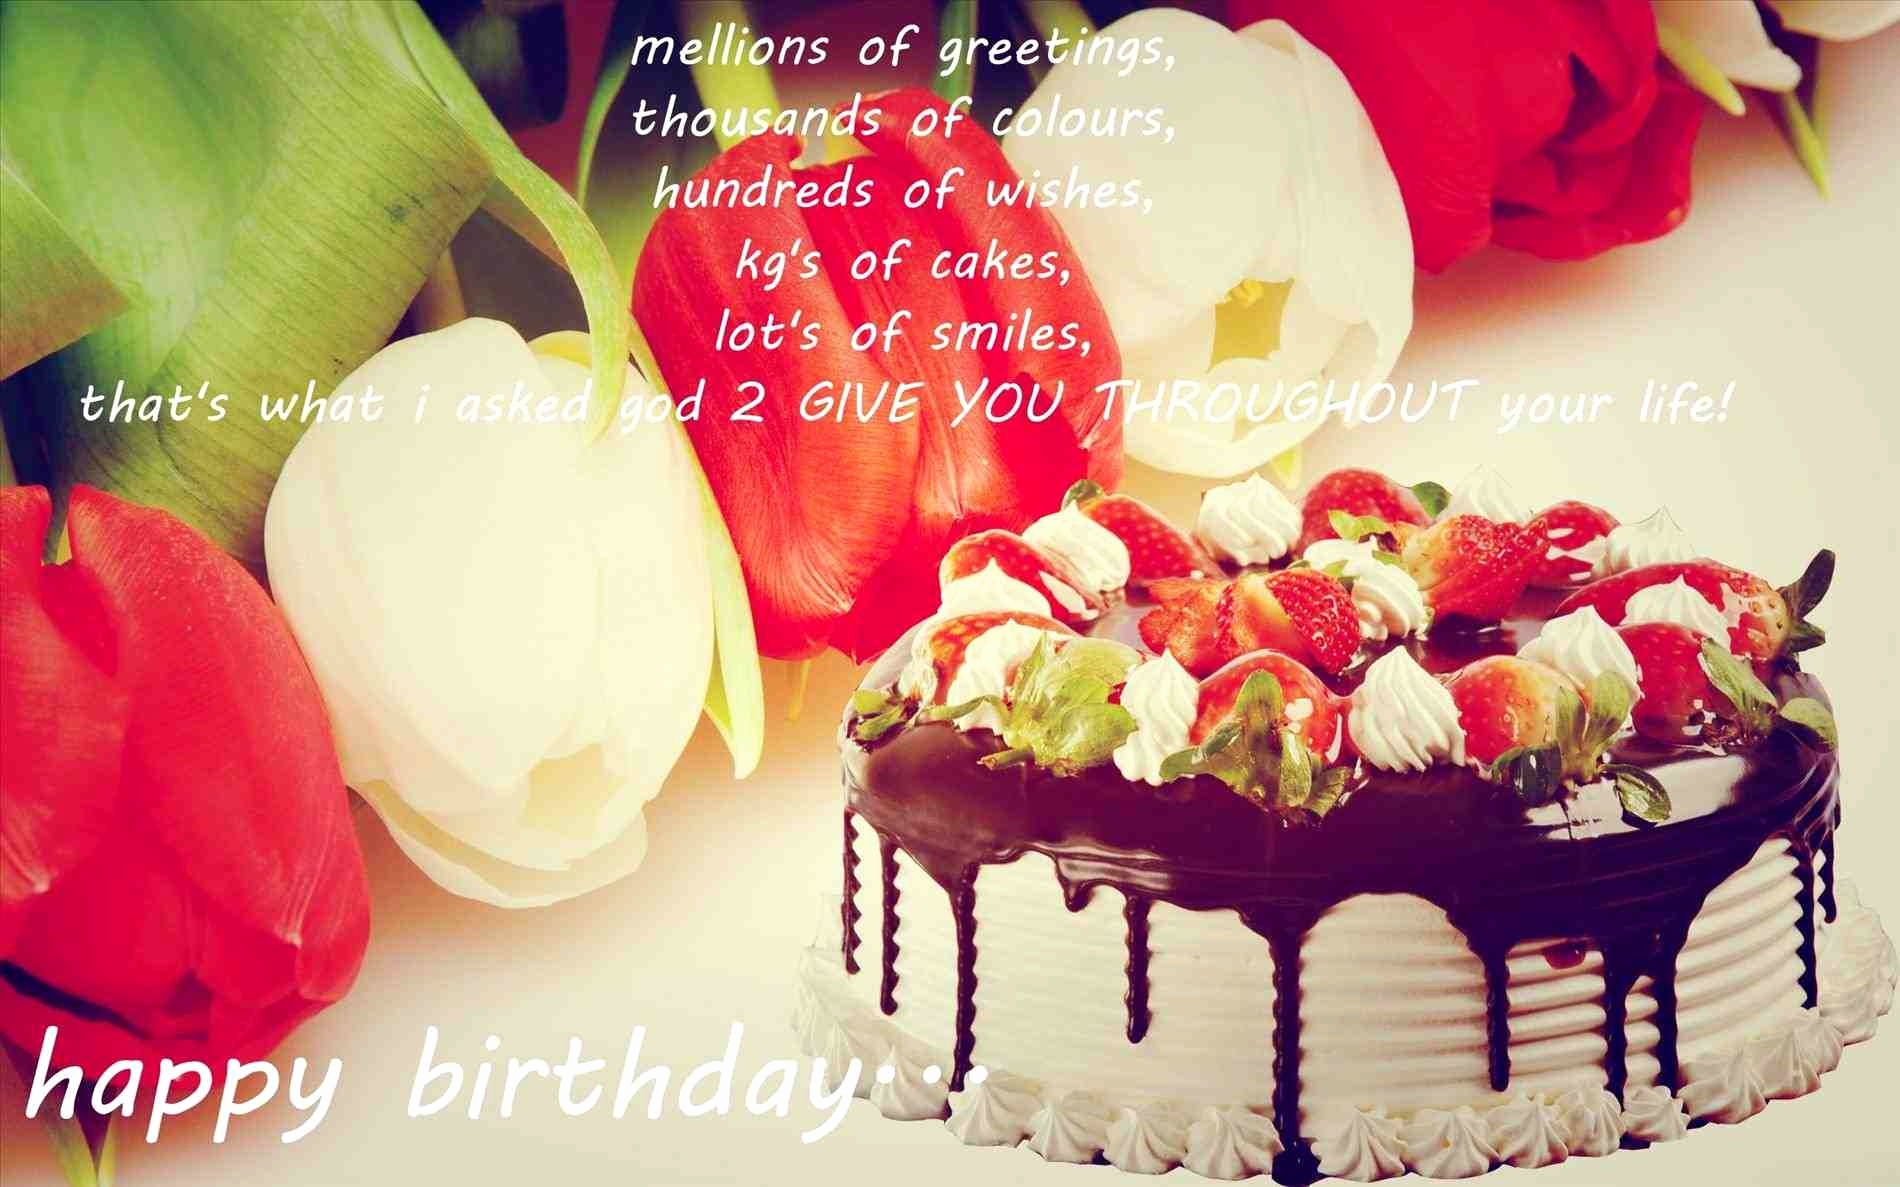 birthday cards with name and photo editor online ; birthday-cards-with-name-and-photo-editor-online-best-of-birthday-cake-with-name-editing-online-4birthdayfo-of-birthday-cards-with-name-and-photo-editor-online